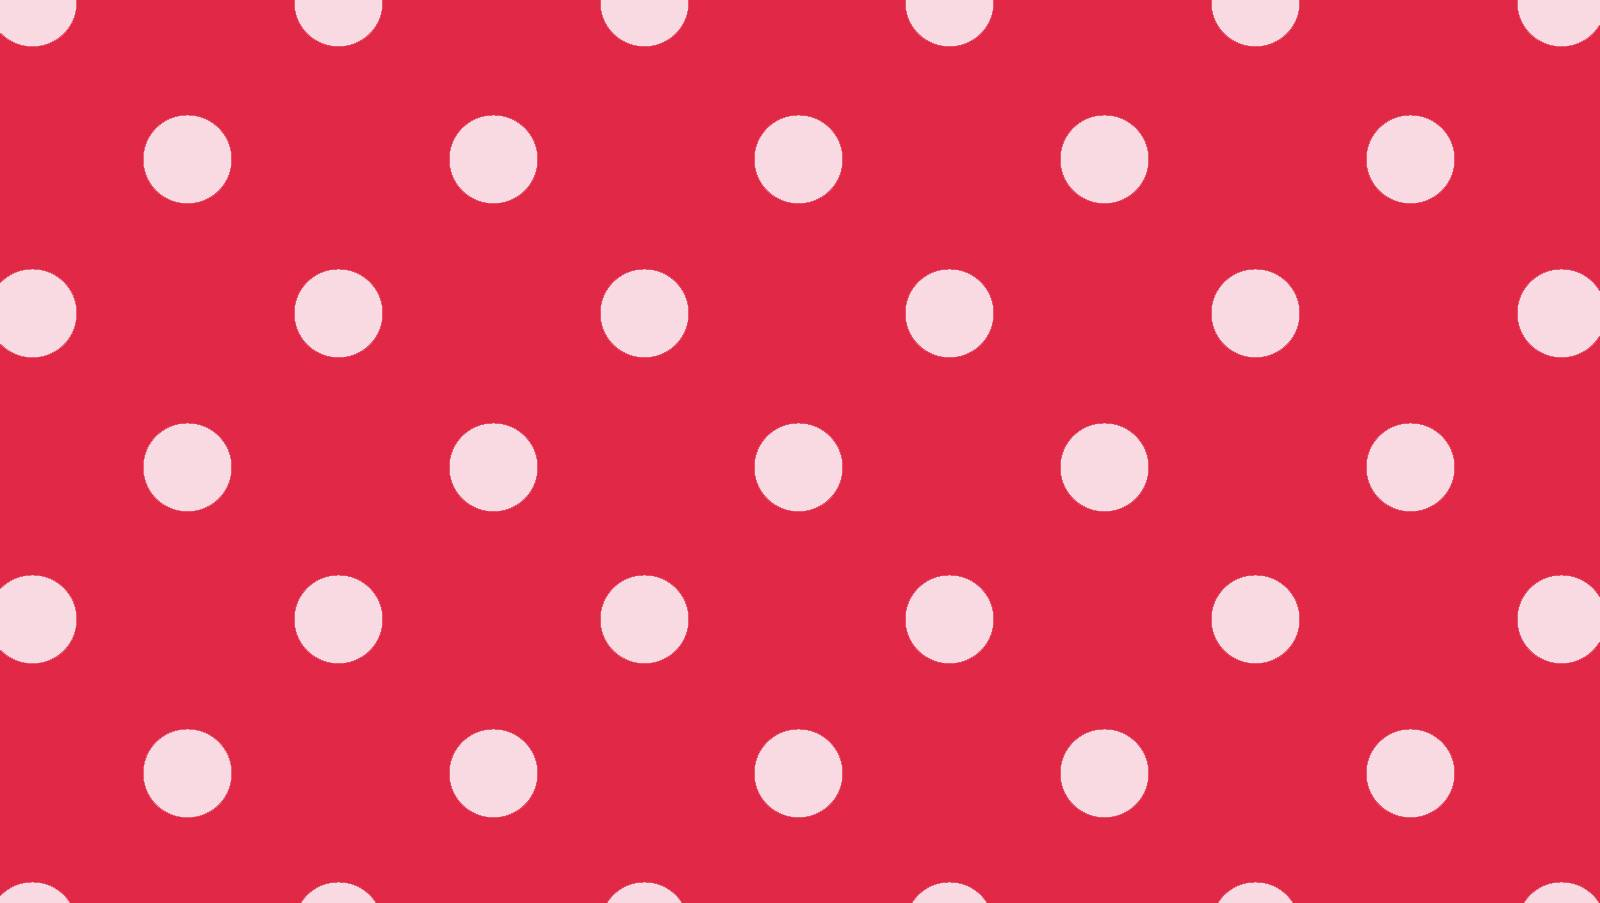 Pics photos pink polka dot s wallpaper - Pink Polka Dots K On Wallpaper